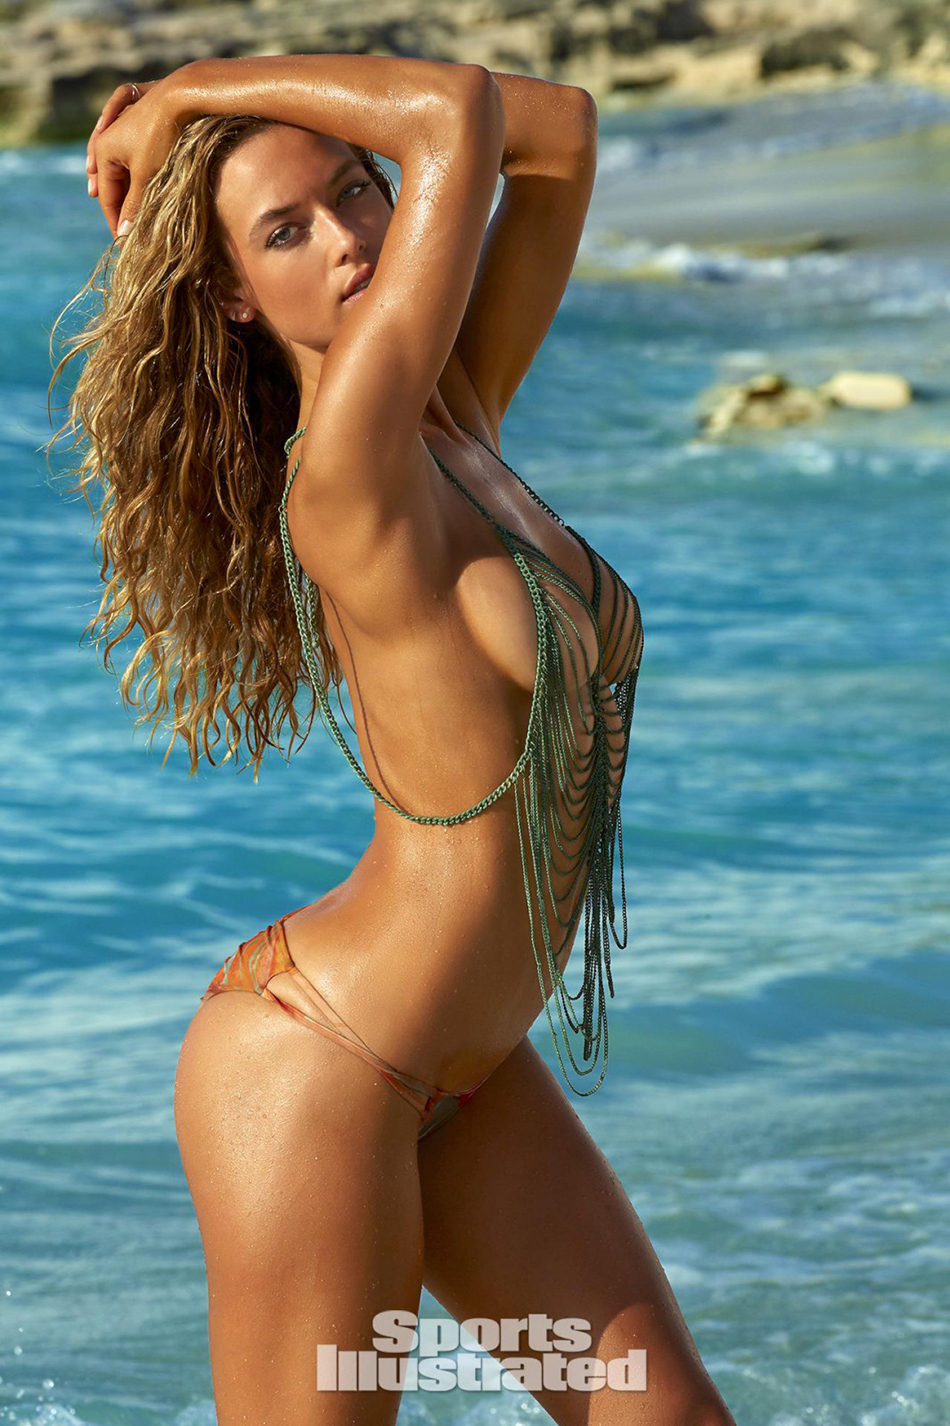 si swimsuit girls nude